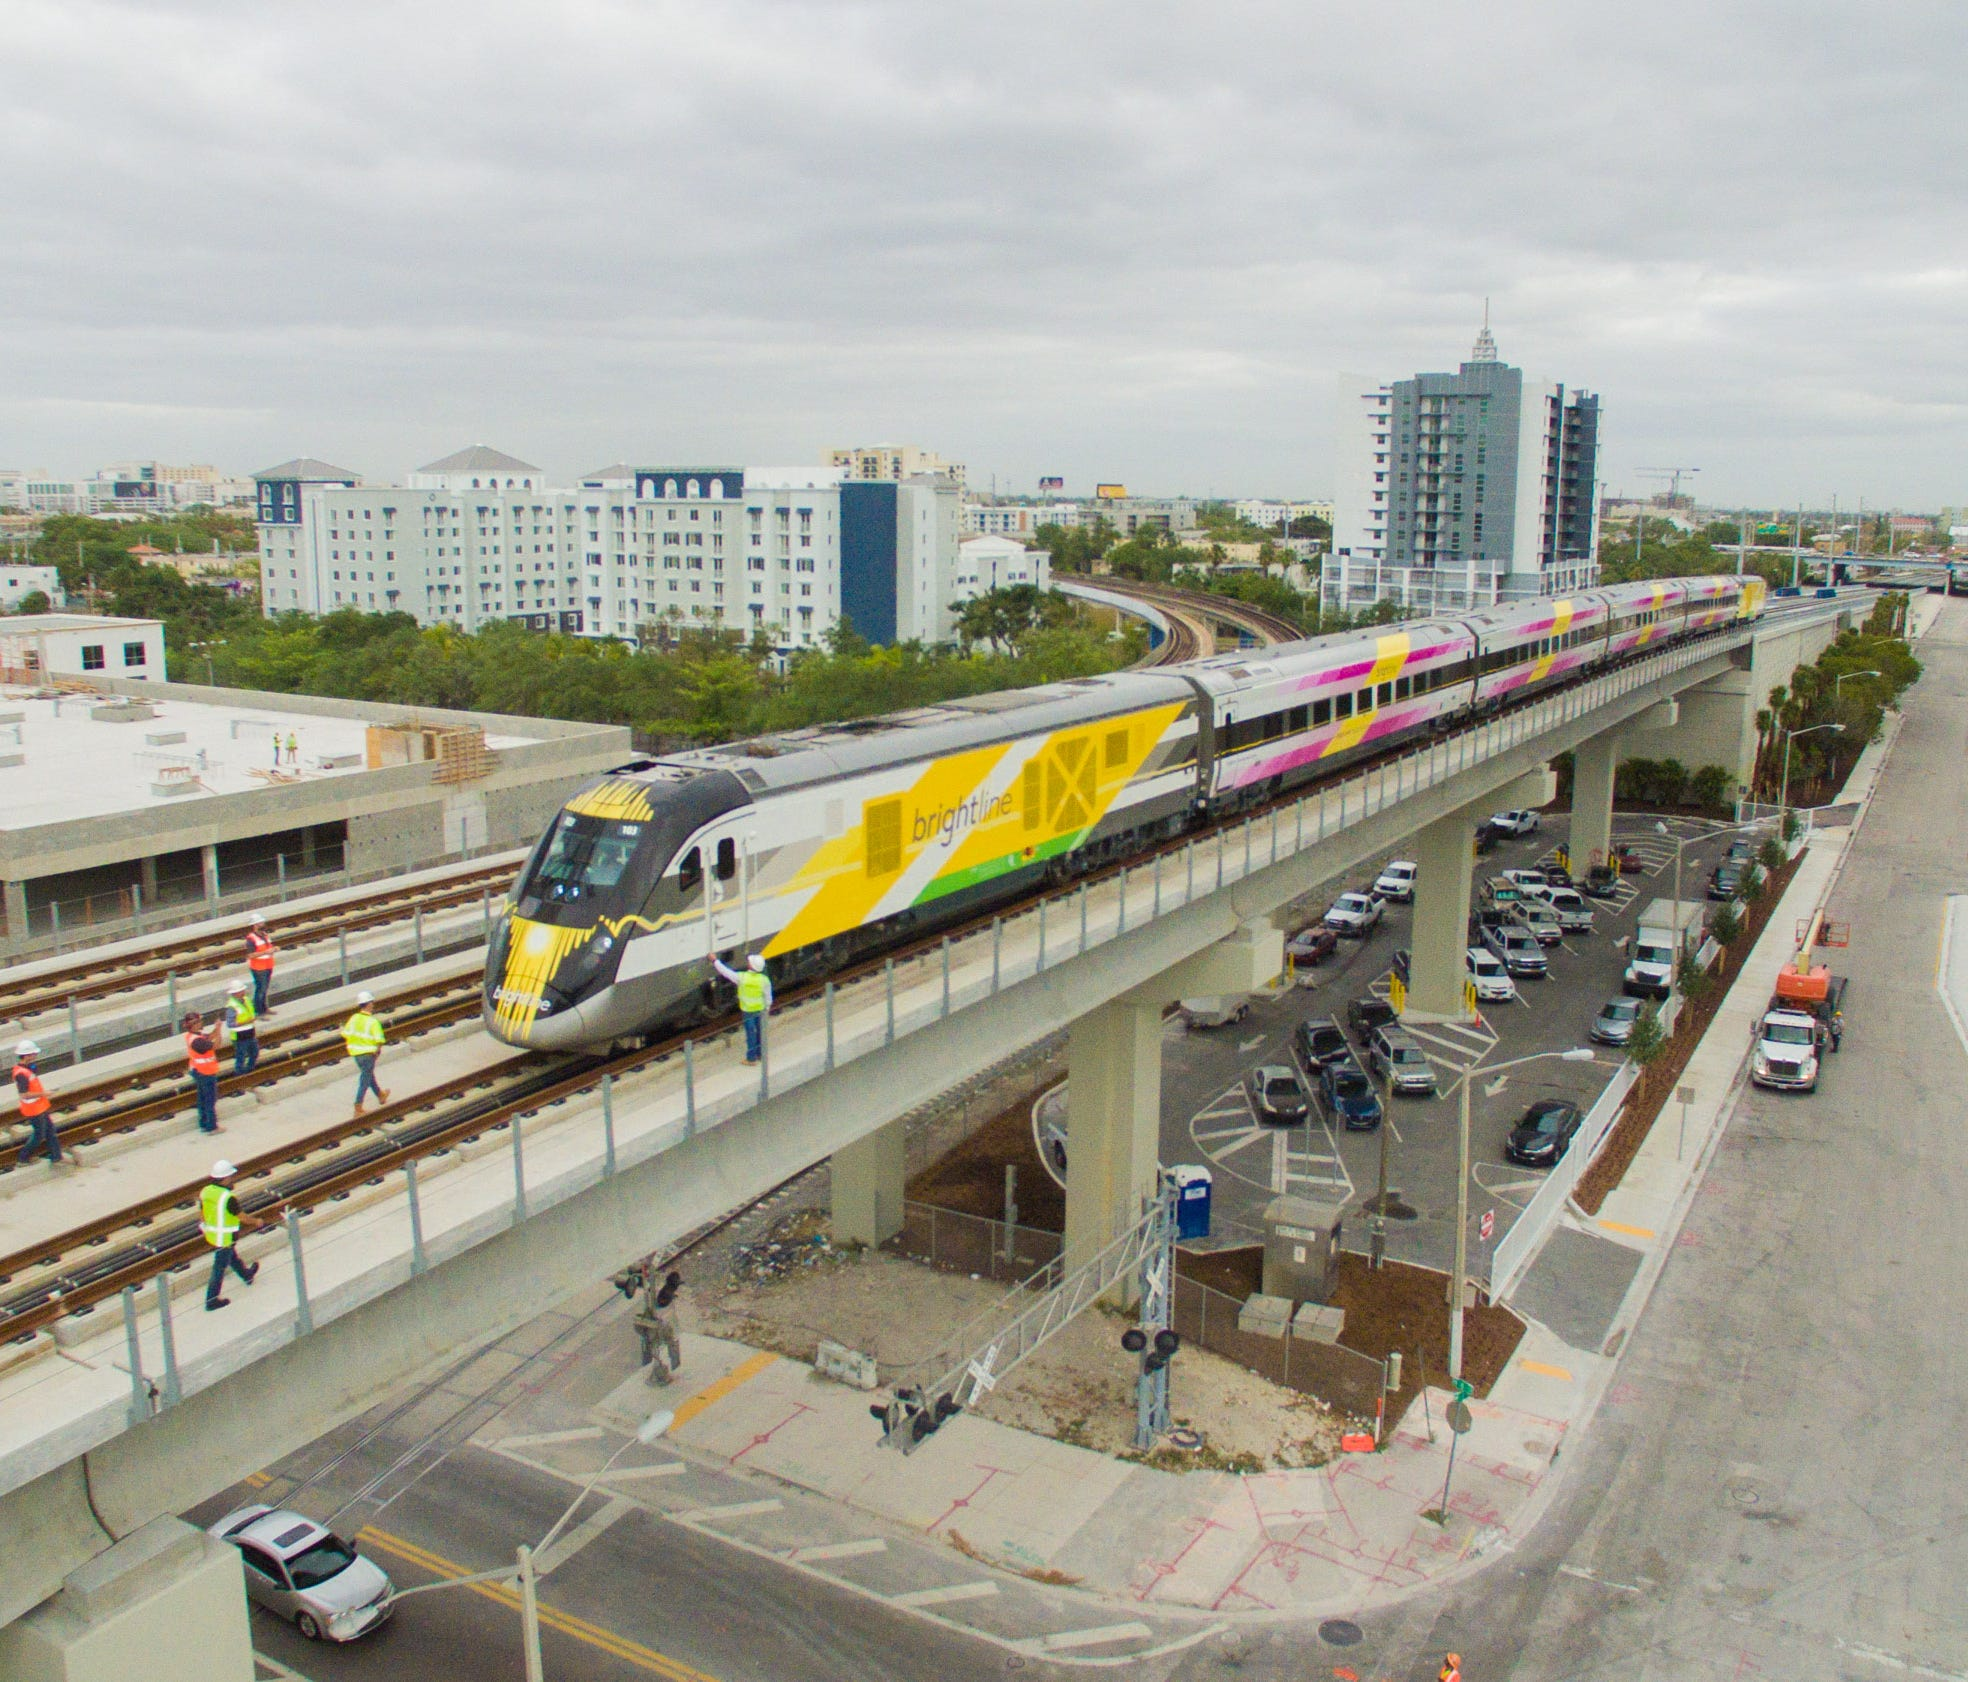 A Brightline train approaches MiamiCentral station.